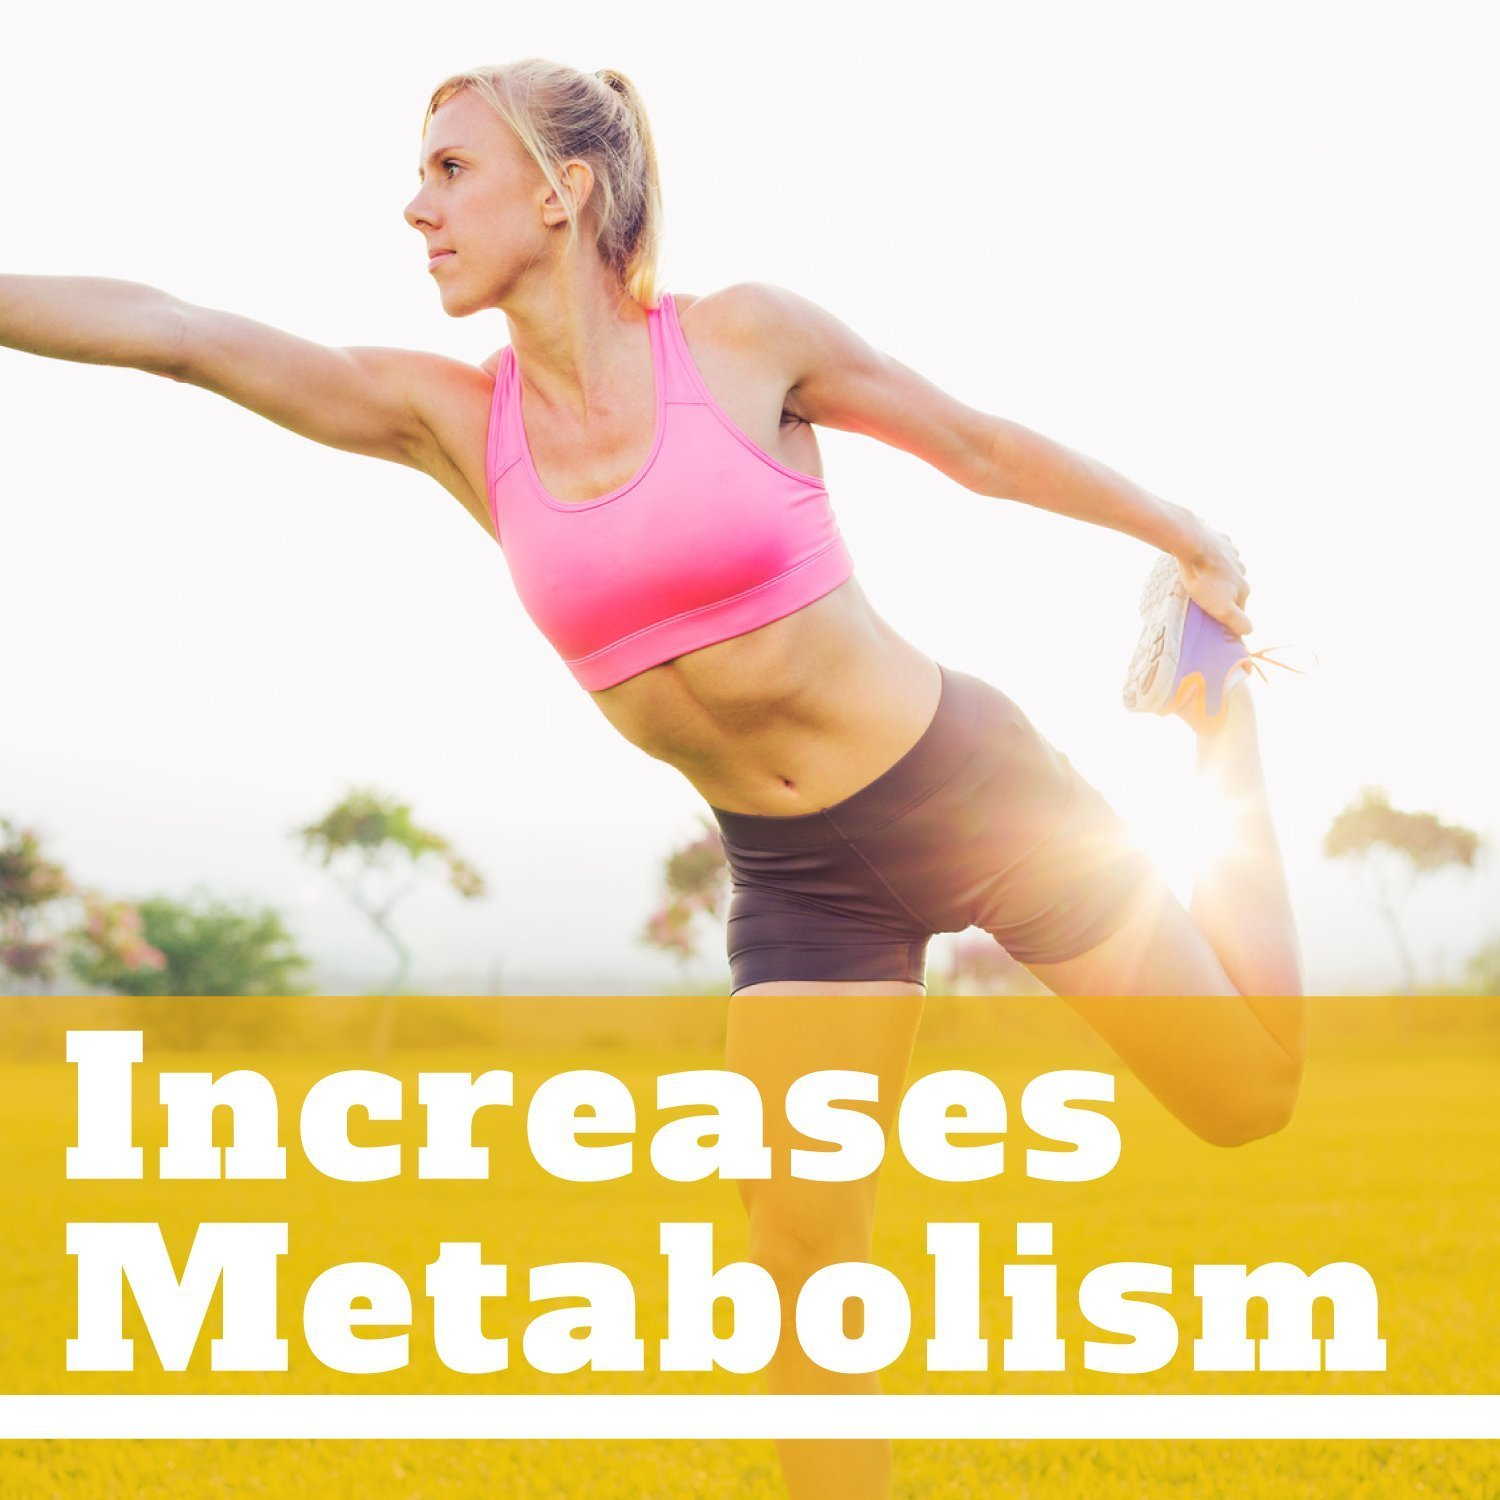 Increased metabolism